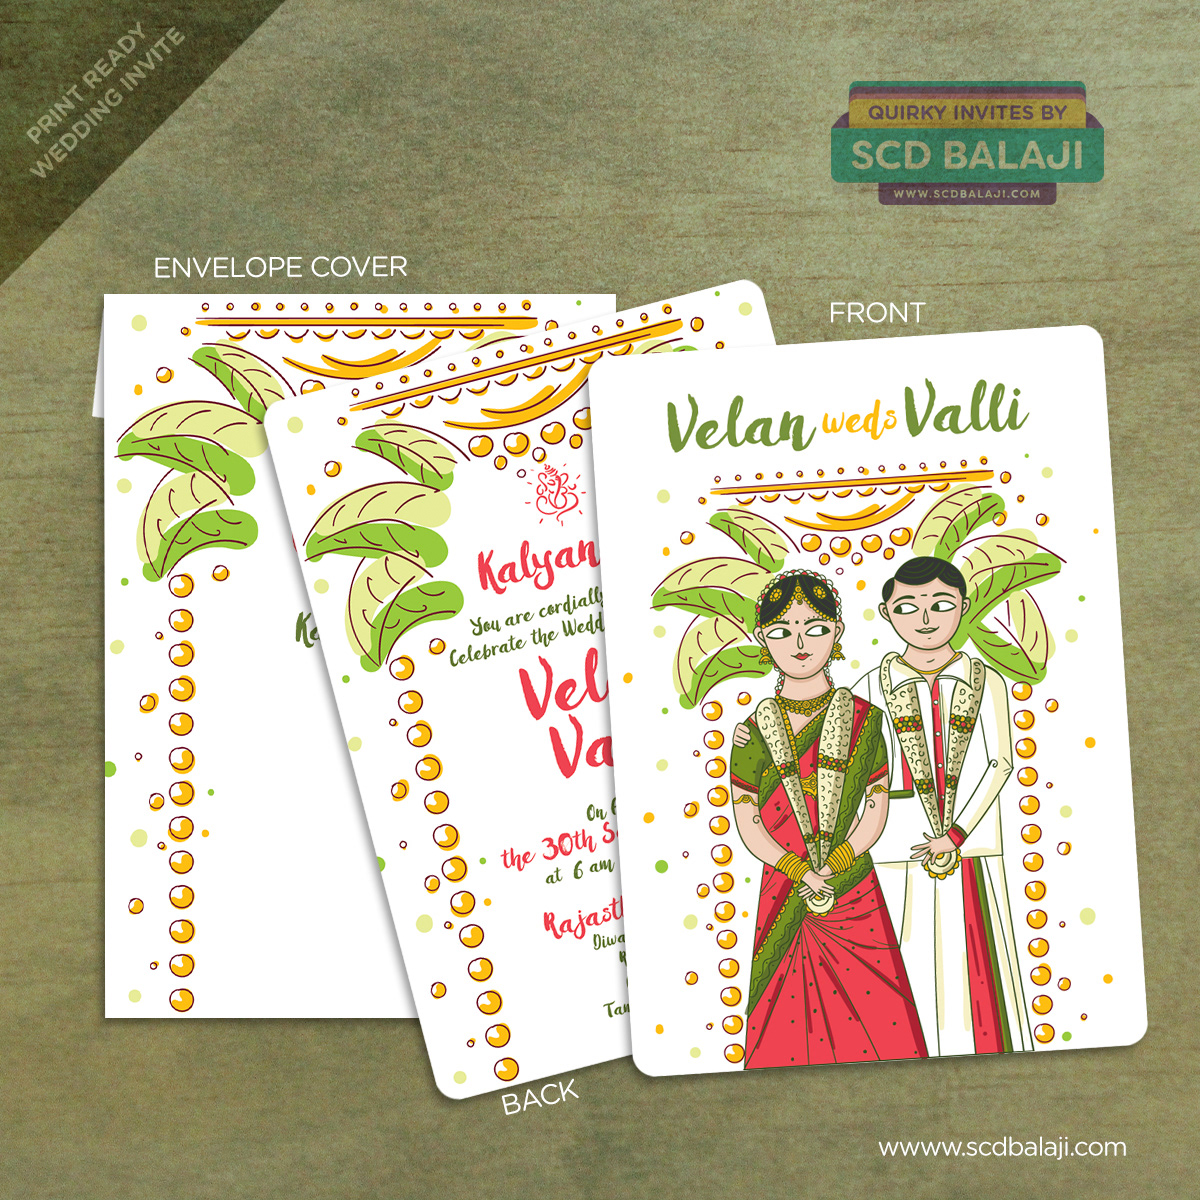 Quirky & Creative Indian Wedding Invitations - Tamil Wedding ...